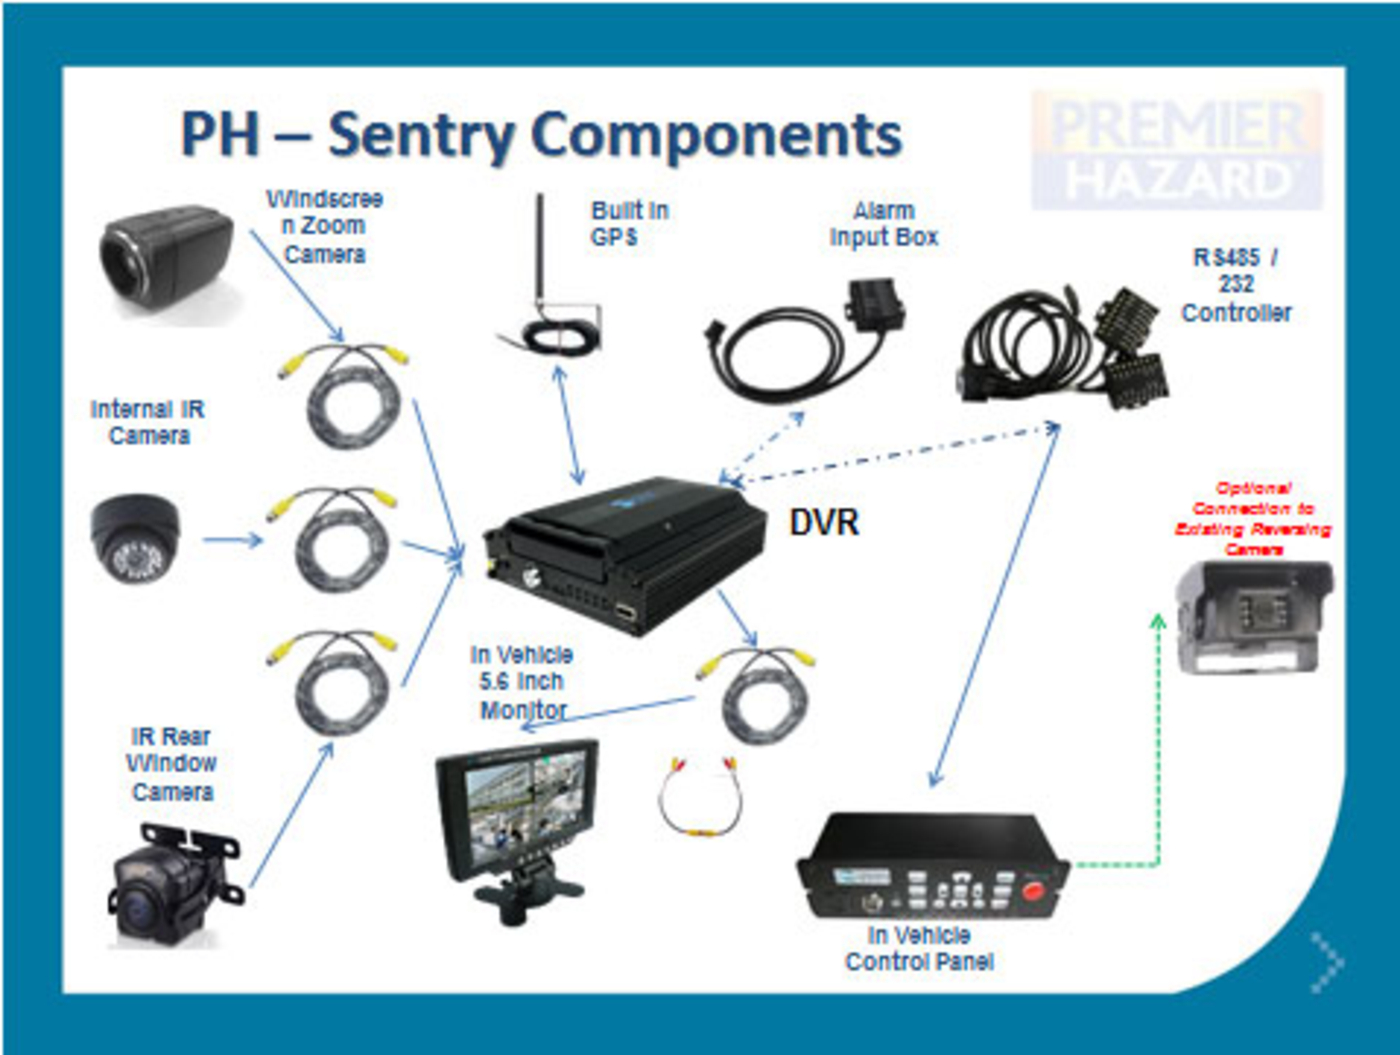 Mobile cctv camera kit premier hazard manufacture and supply ph sentry components asfbconference2016 Gallery